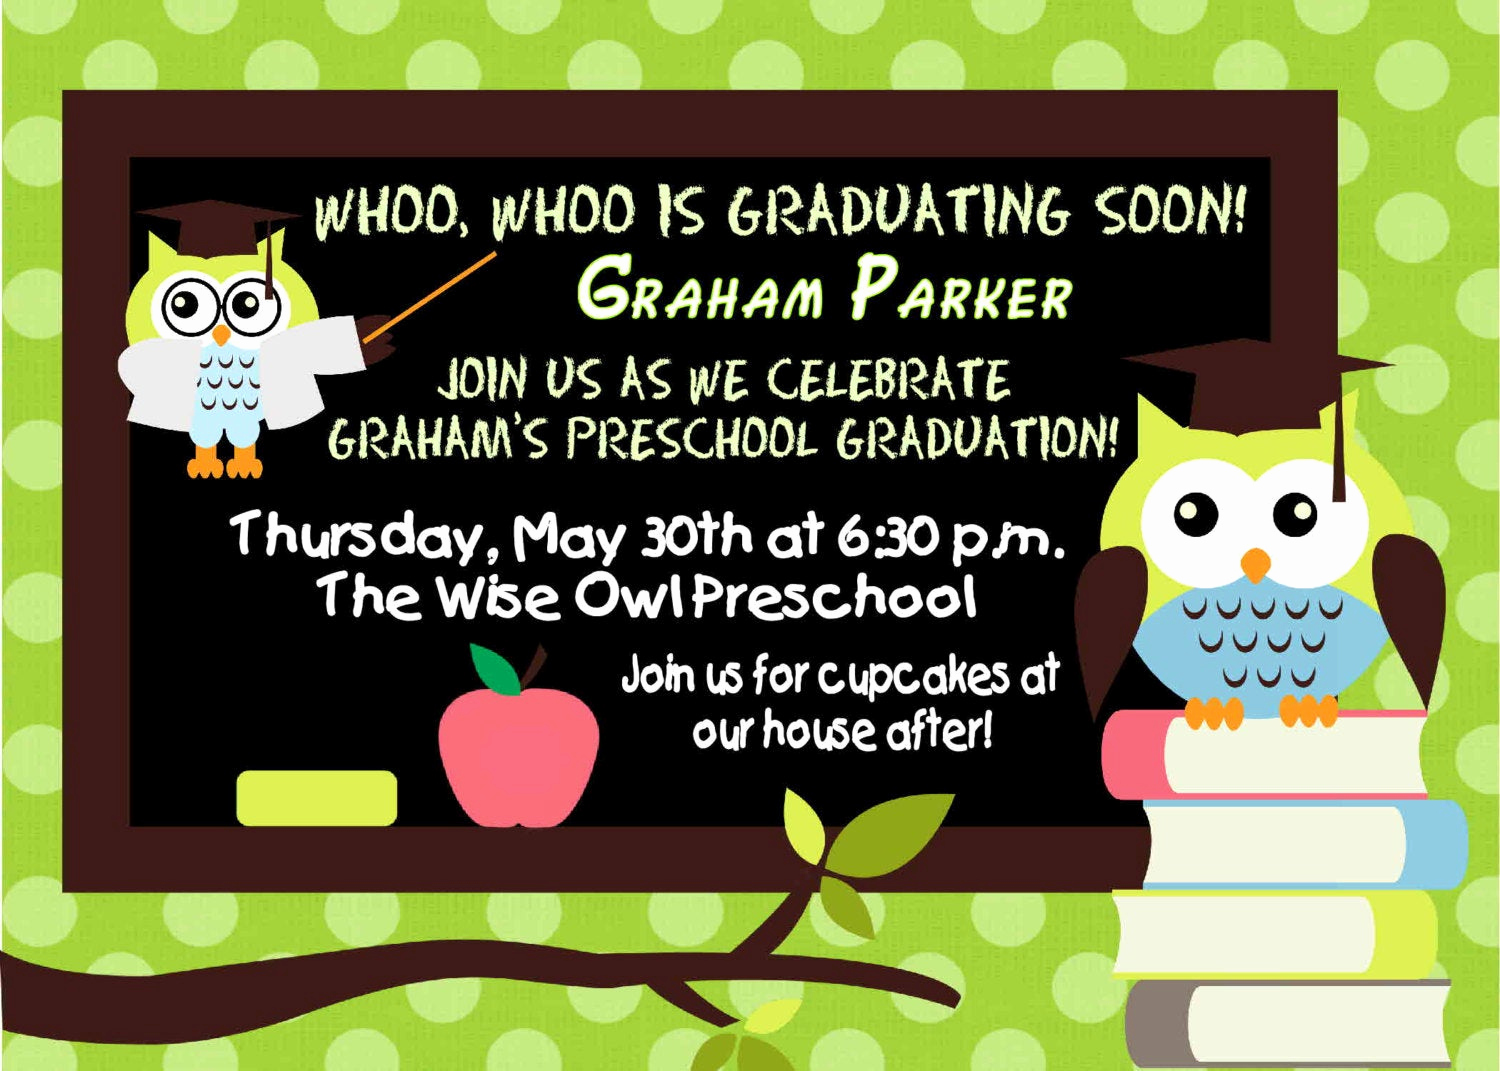 Kindergarten Graduation Invitation Wording Unique Digital Preschool Kindergarten Wise Owl Graduation Invitation